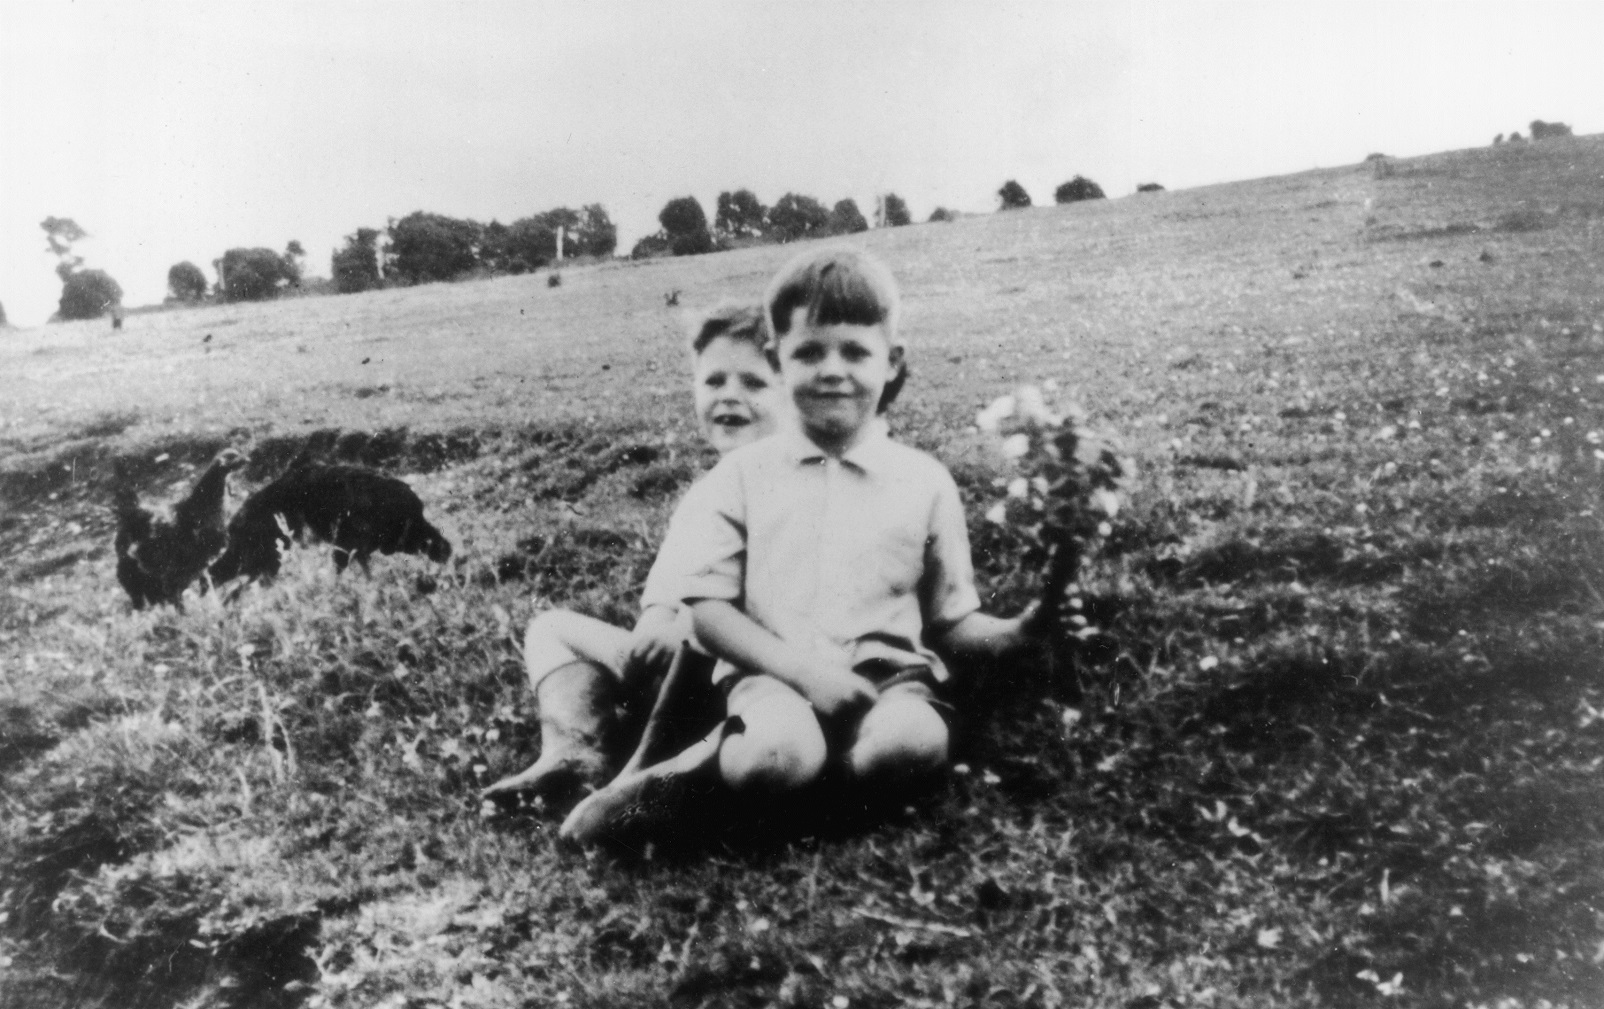 Paul McCartney age 6, 1948